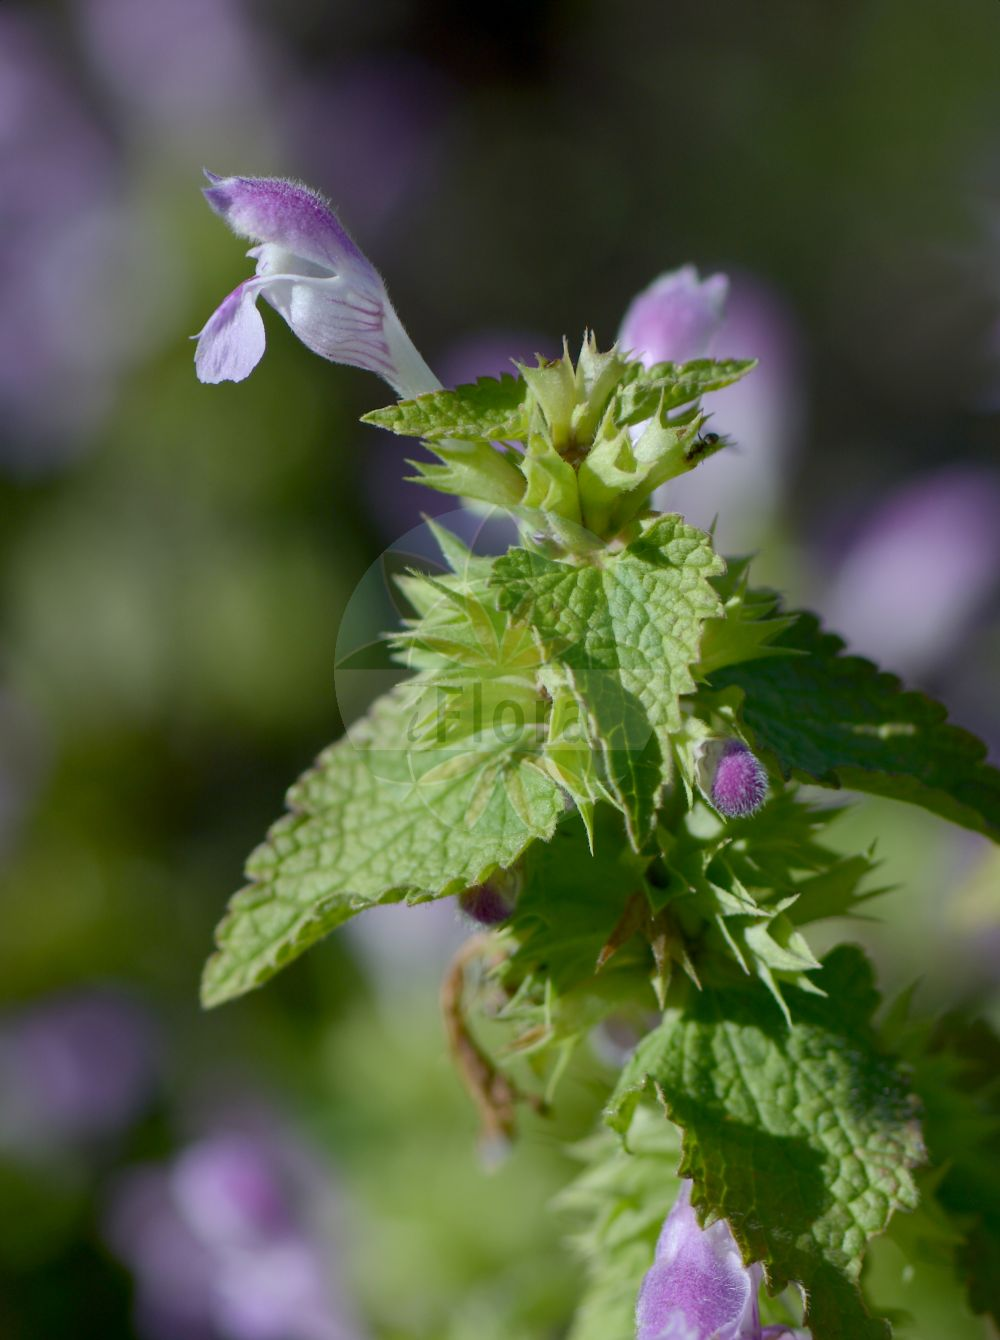 Foto von Lamium garganicum. Das Bild zeigt Blatt und Bluete. Das Foto wurde in Kopenhagen, Daenemark aufgenommen. ---- Photo of Lamium garganicum.The image is showing leaf and flower.The picture was taken in Copenhagen, Denmark.(Lamium garganicum,Lamium,Taubnessel,Deadnettle,Lamiaceae,Lippenbluetengewaechse;Lippenbluetler,Nettle family,Blatt,Bluete,leaf,flower)